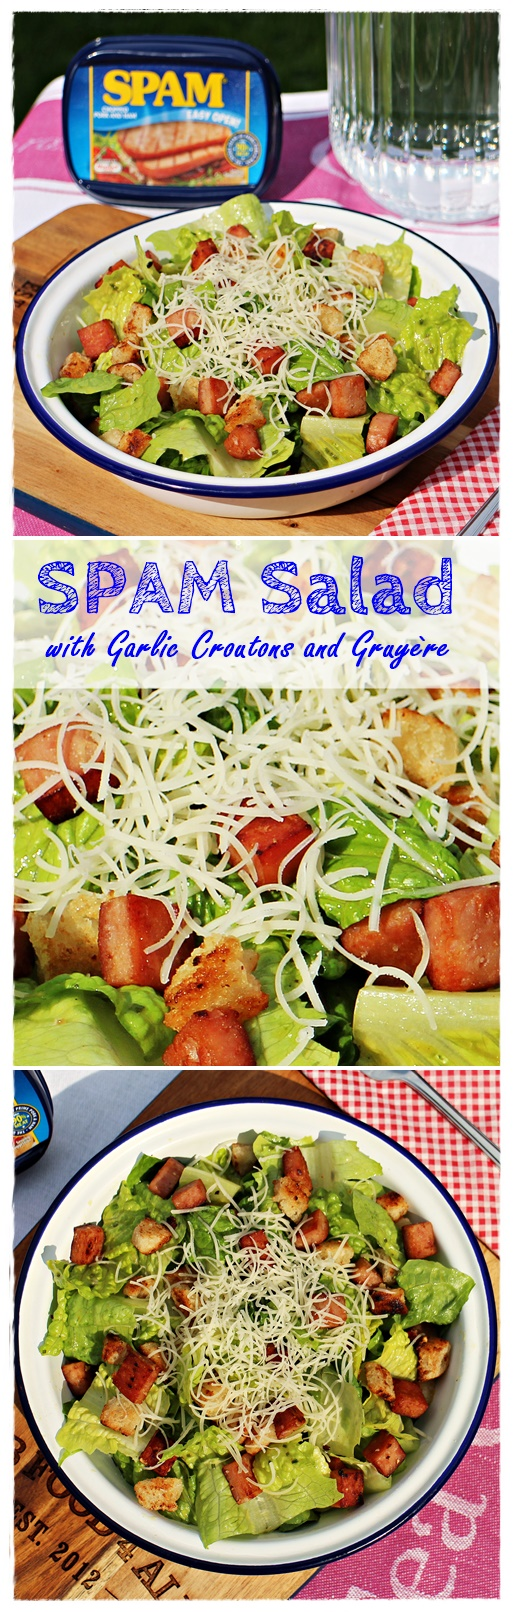 SPAM Salad with Garlic Croutons and Gruyère perfect family meal or great for a packed lunch! - Fab Food 4 Al